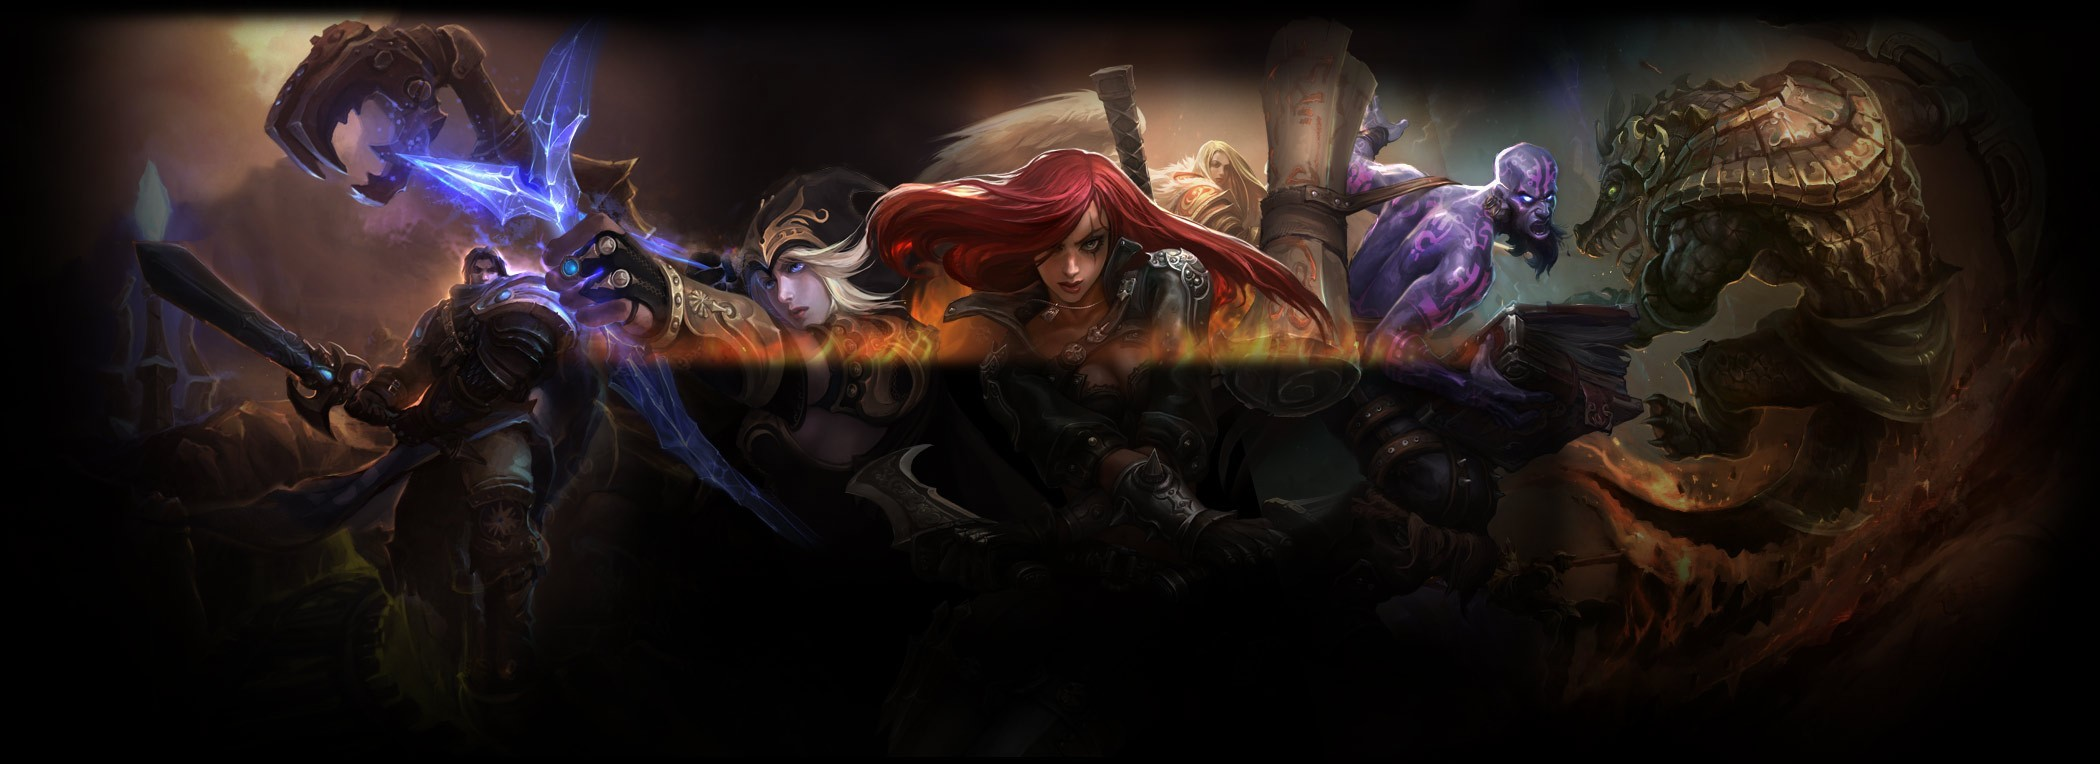 League of Legends artwork HD Wallpaper